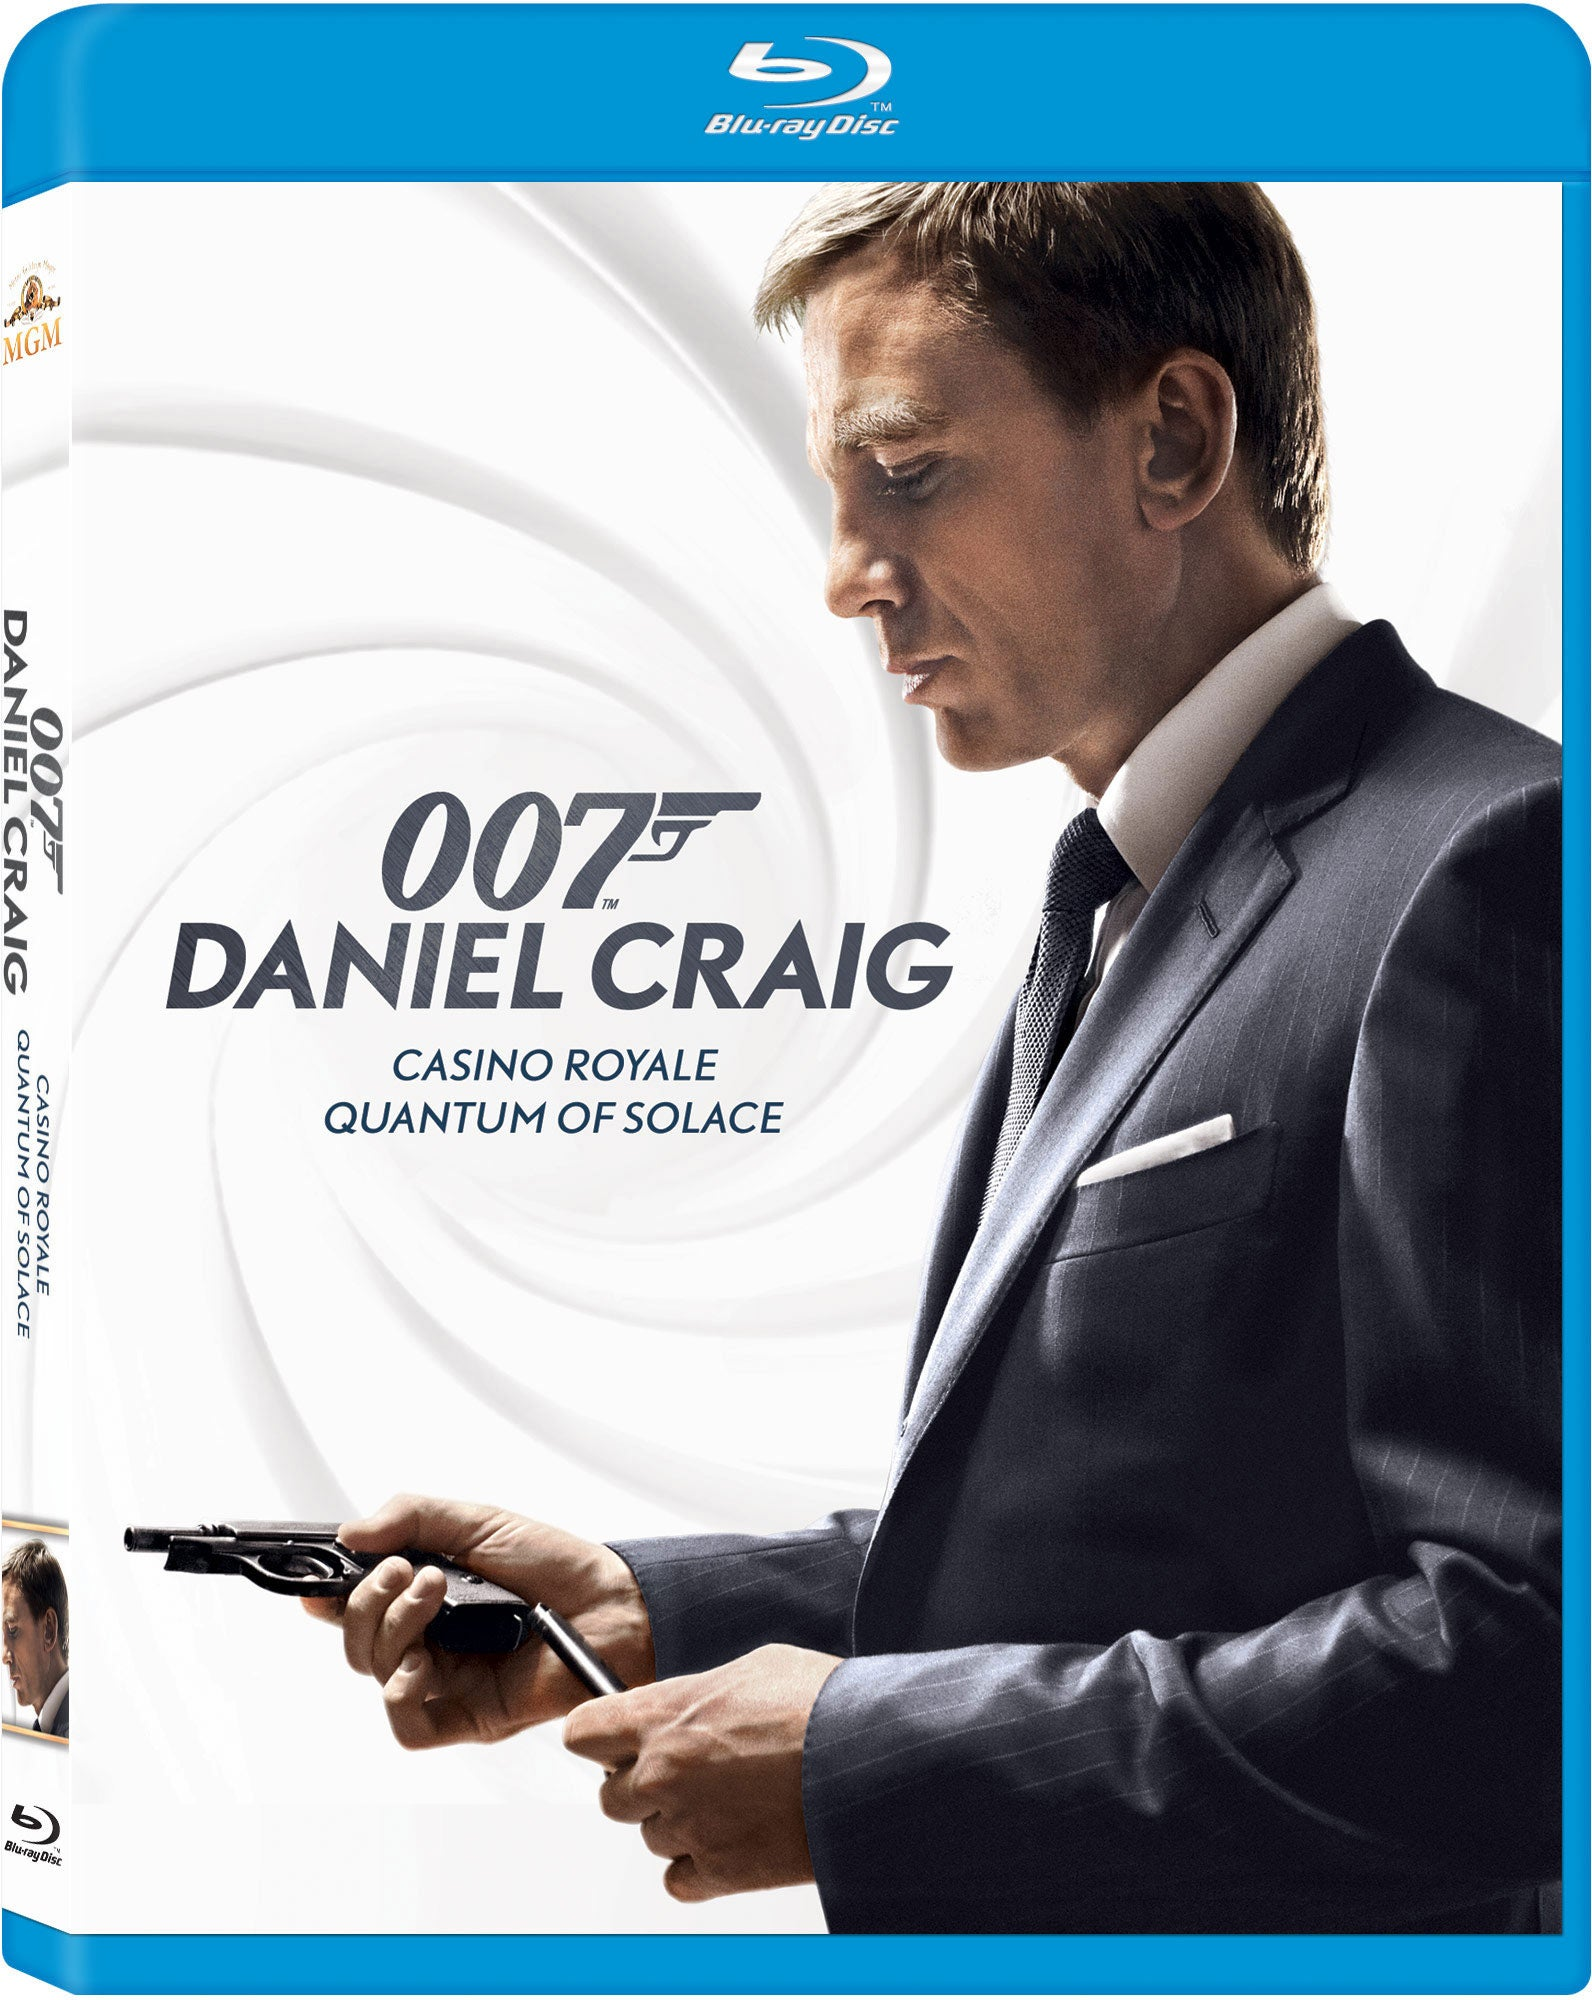 Quantum of Solace/Casino Royale (Blu-ray Disc)